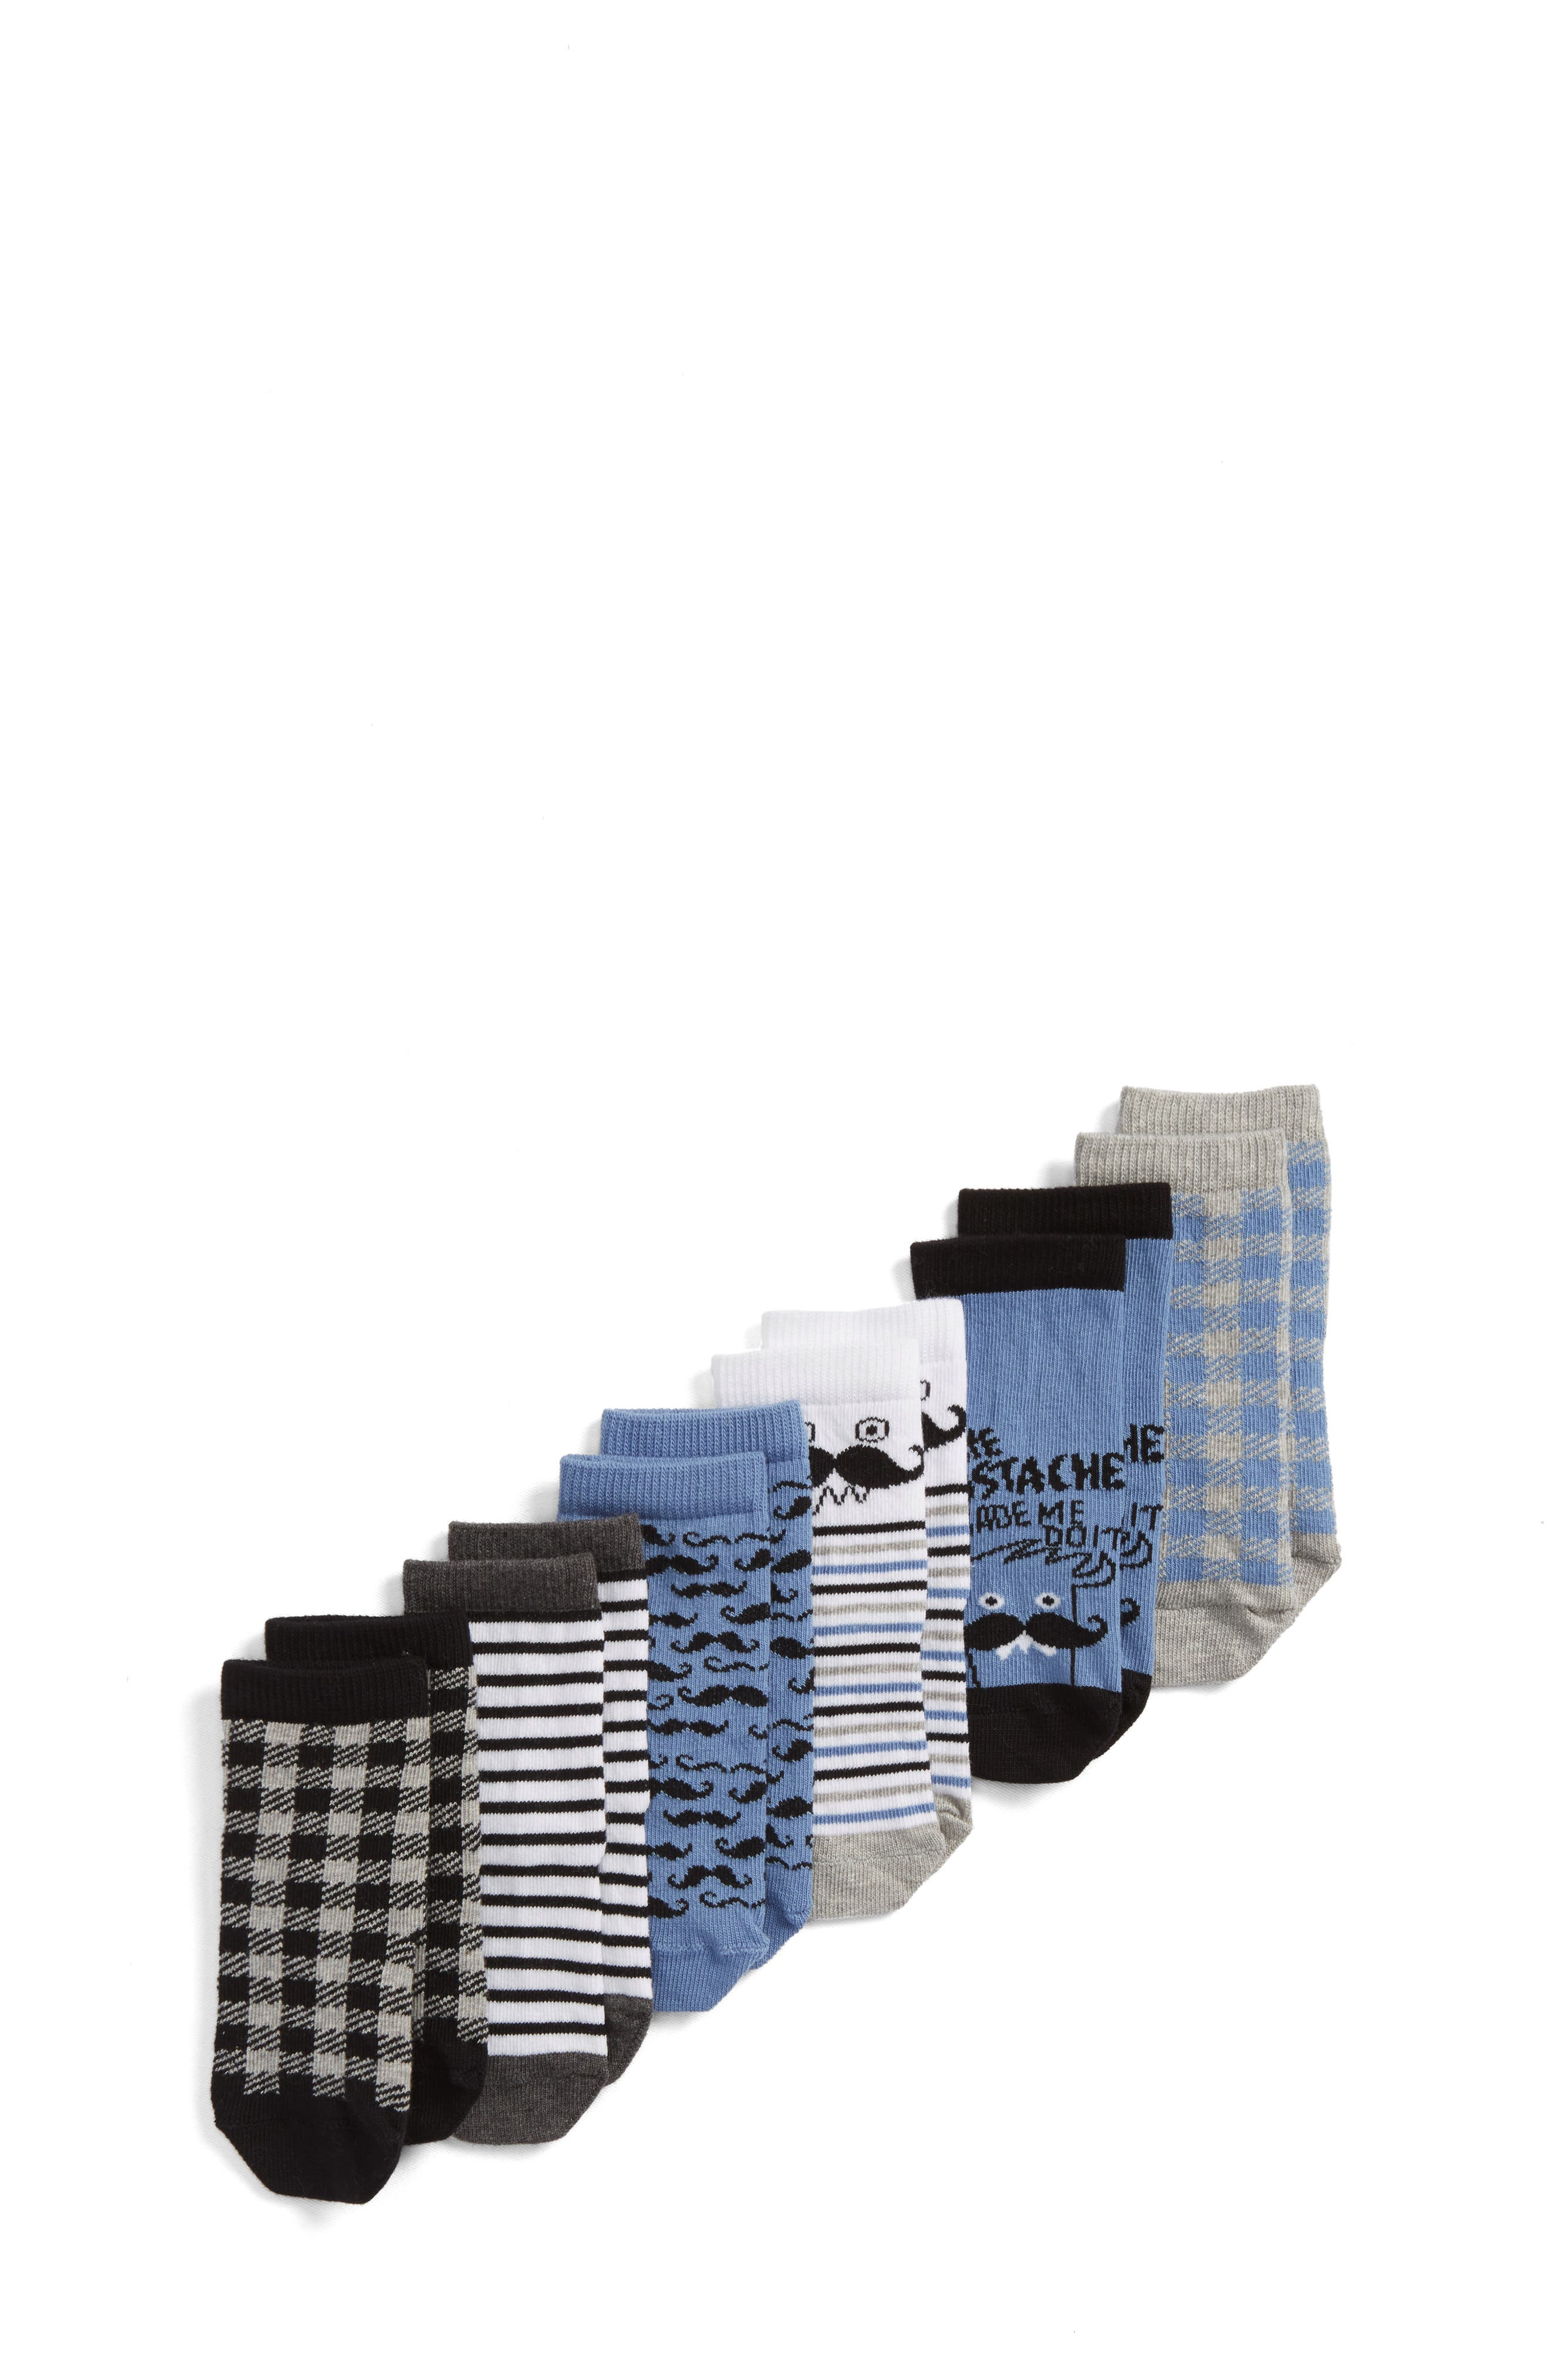 Mustache 6-Pack Crew Socks,                         Main,                         color, BLUE CHAMBRAY